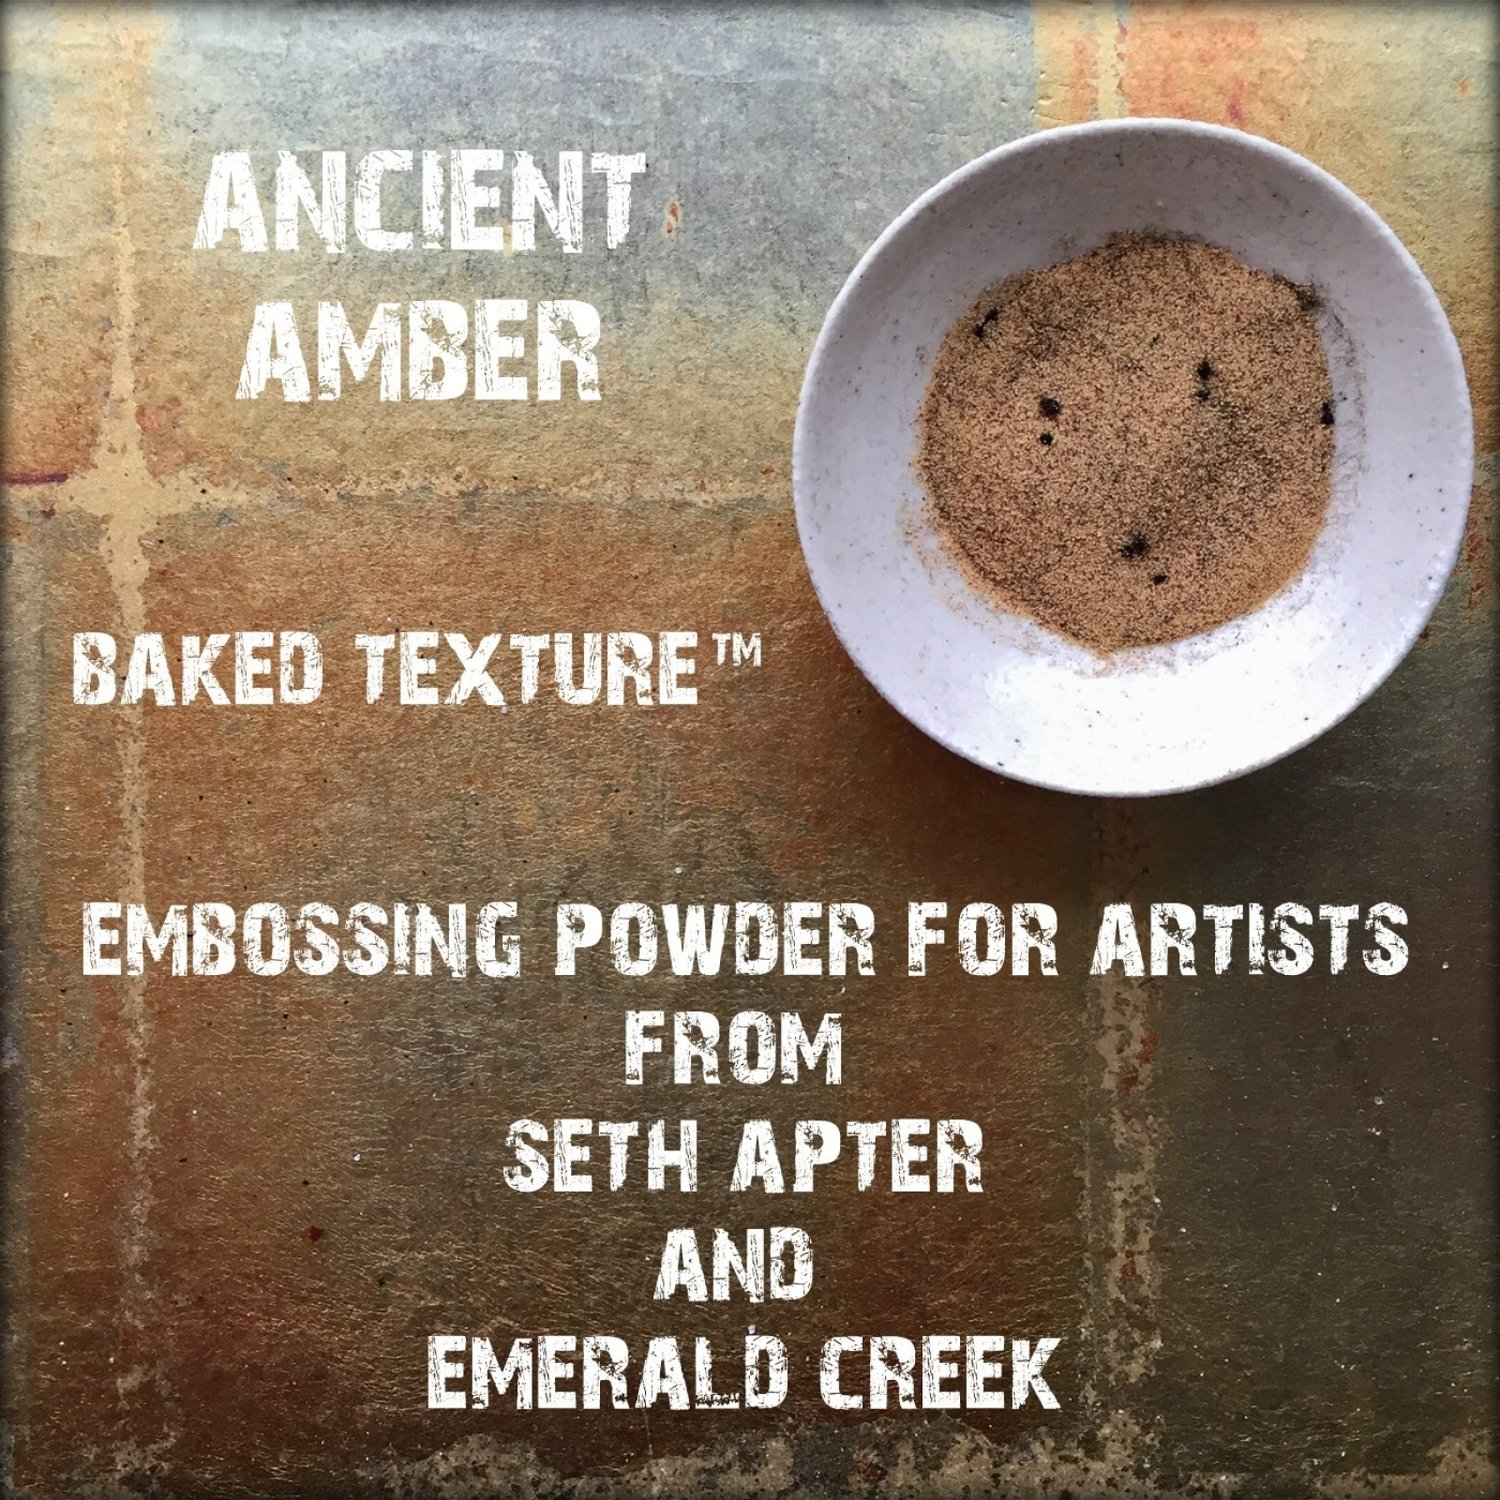 Seth Apter Baked Texture - Ancient Amber